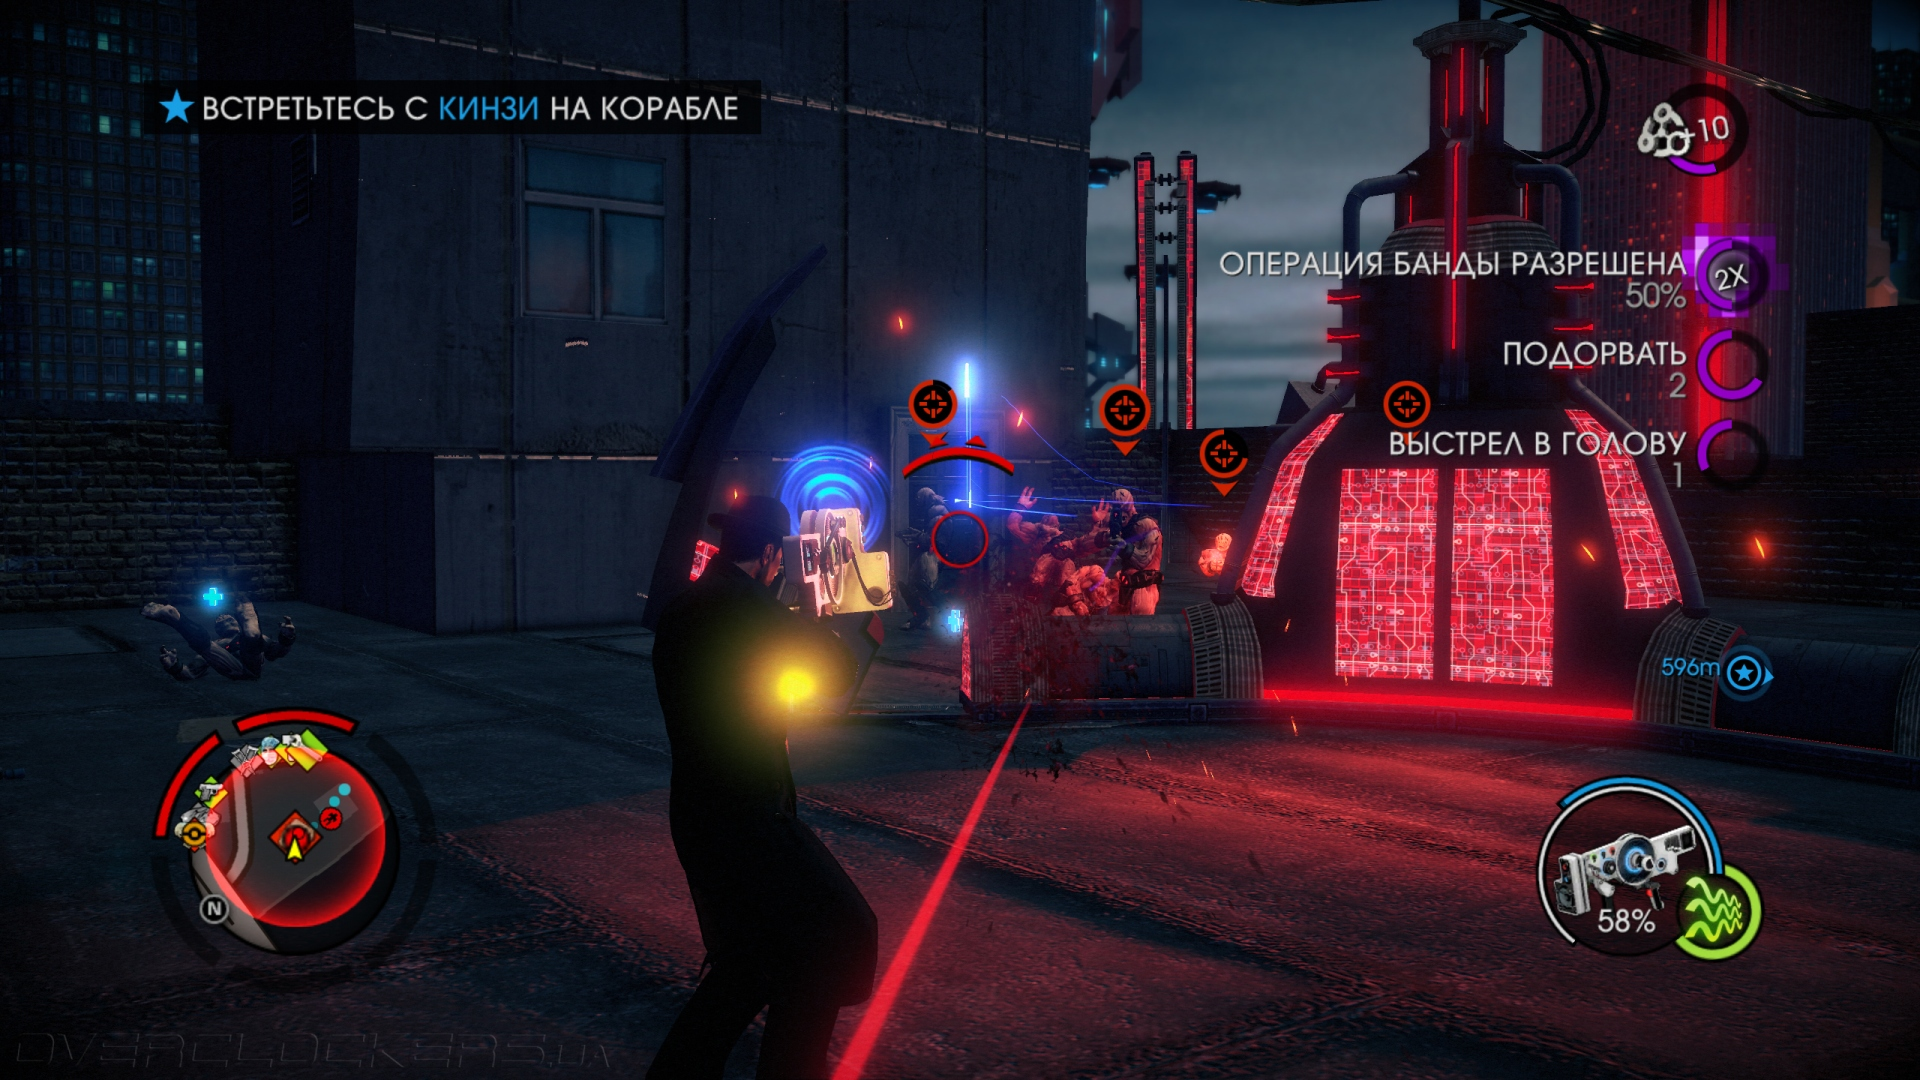 saints row 3 текстуры: